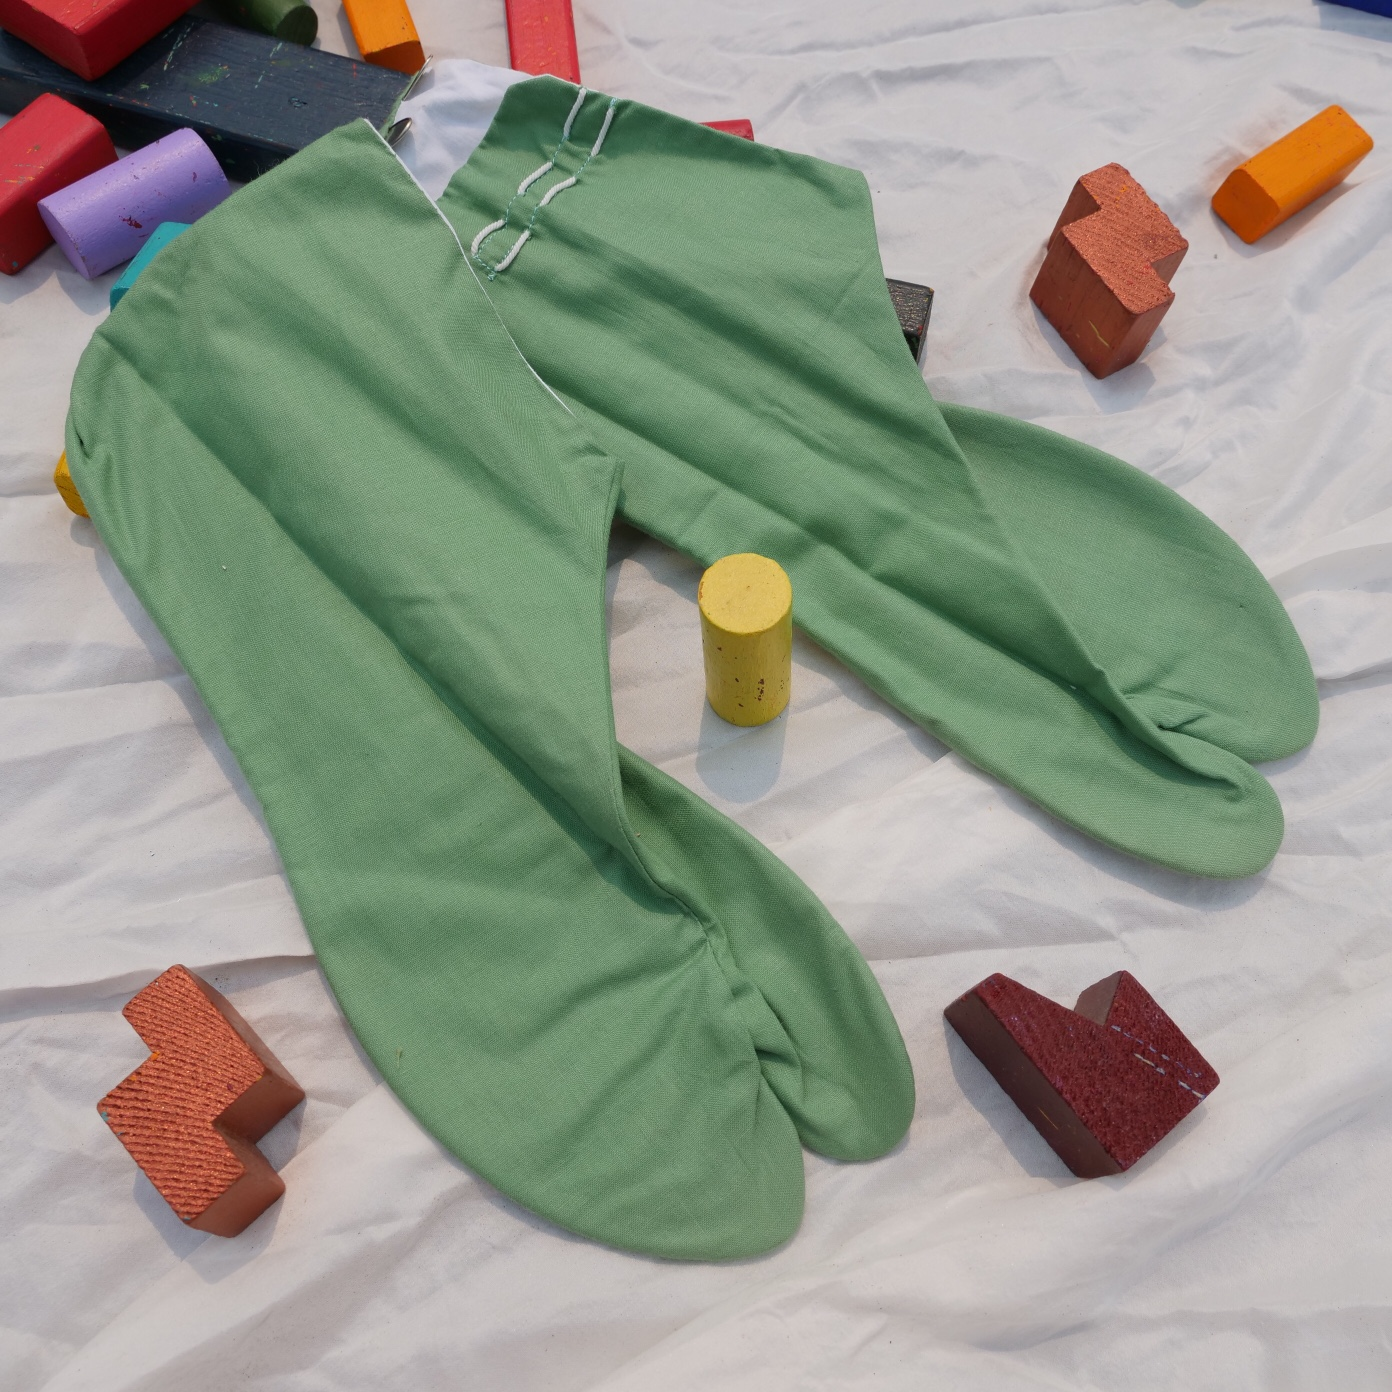 Product Image 1 - Vintage green cotton tabi socks/slippers Made